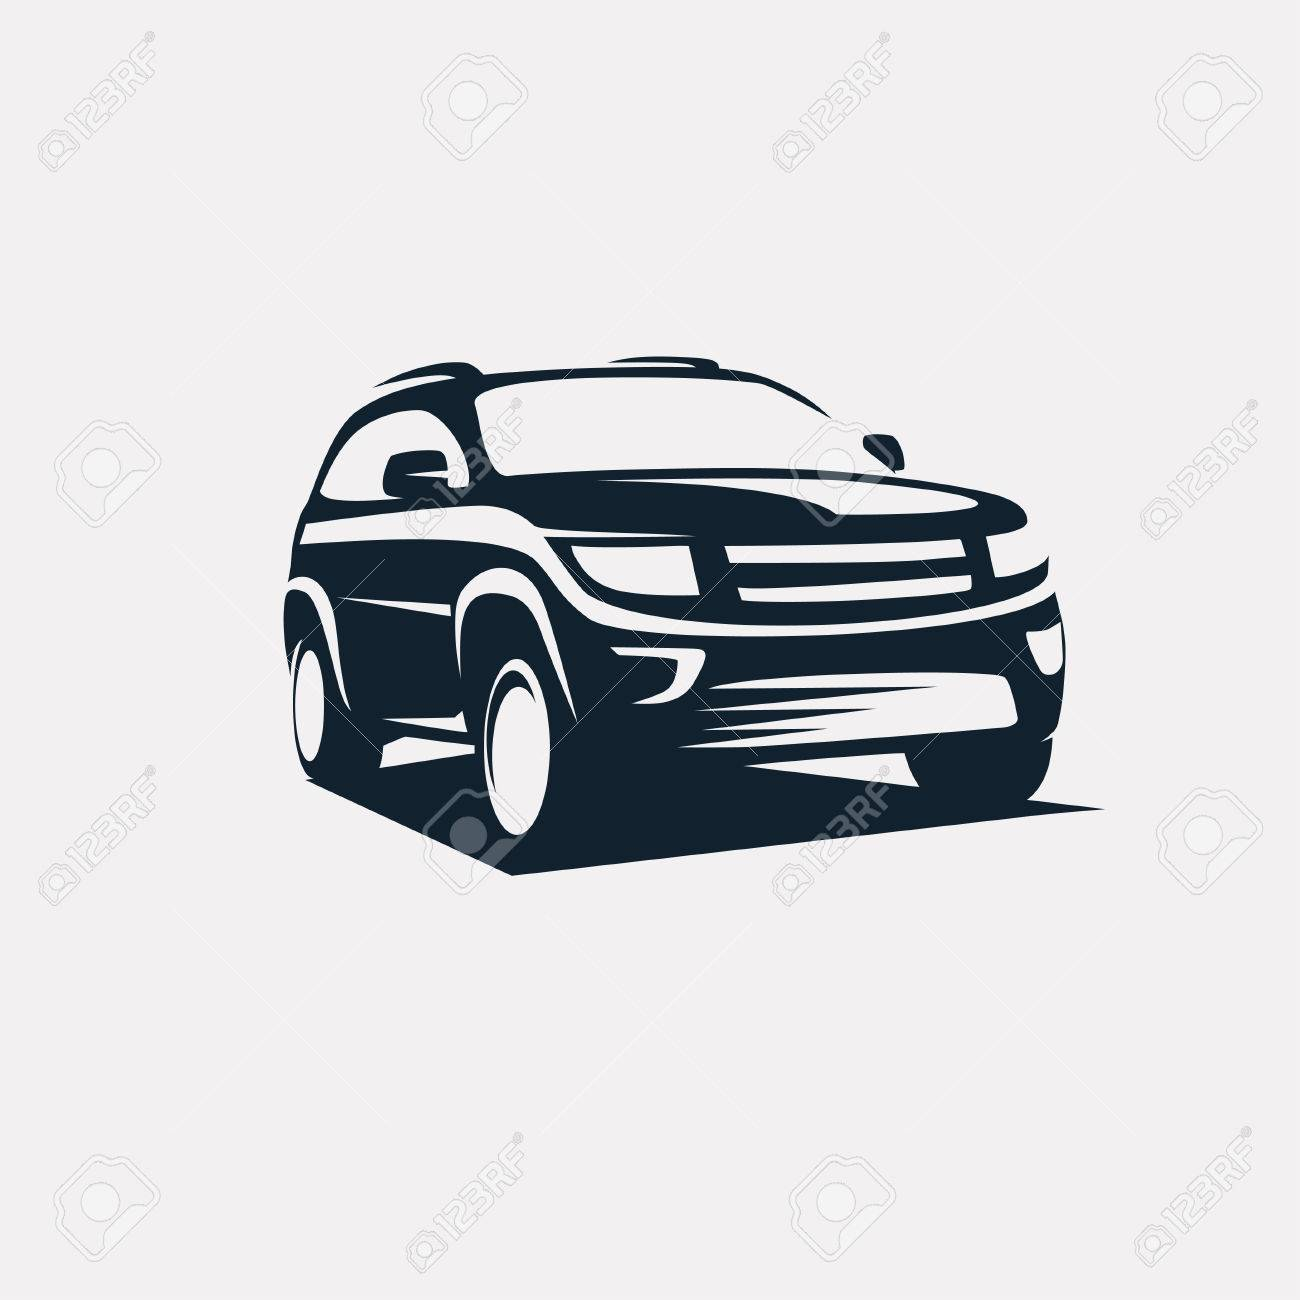 modern suv template, offroader car stylized vector silhouette - 67762591